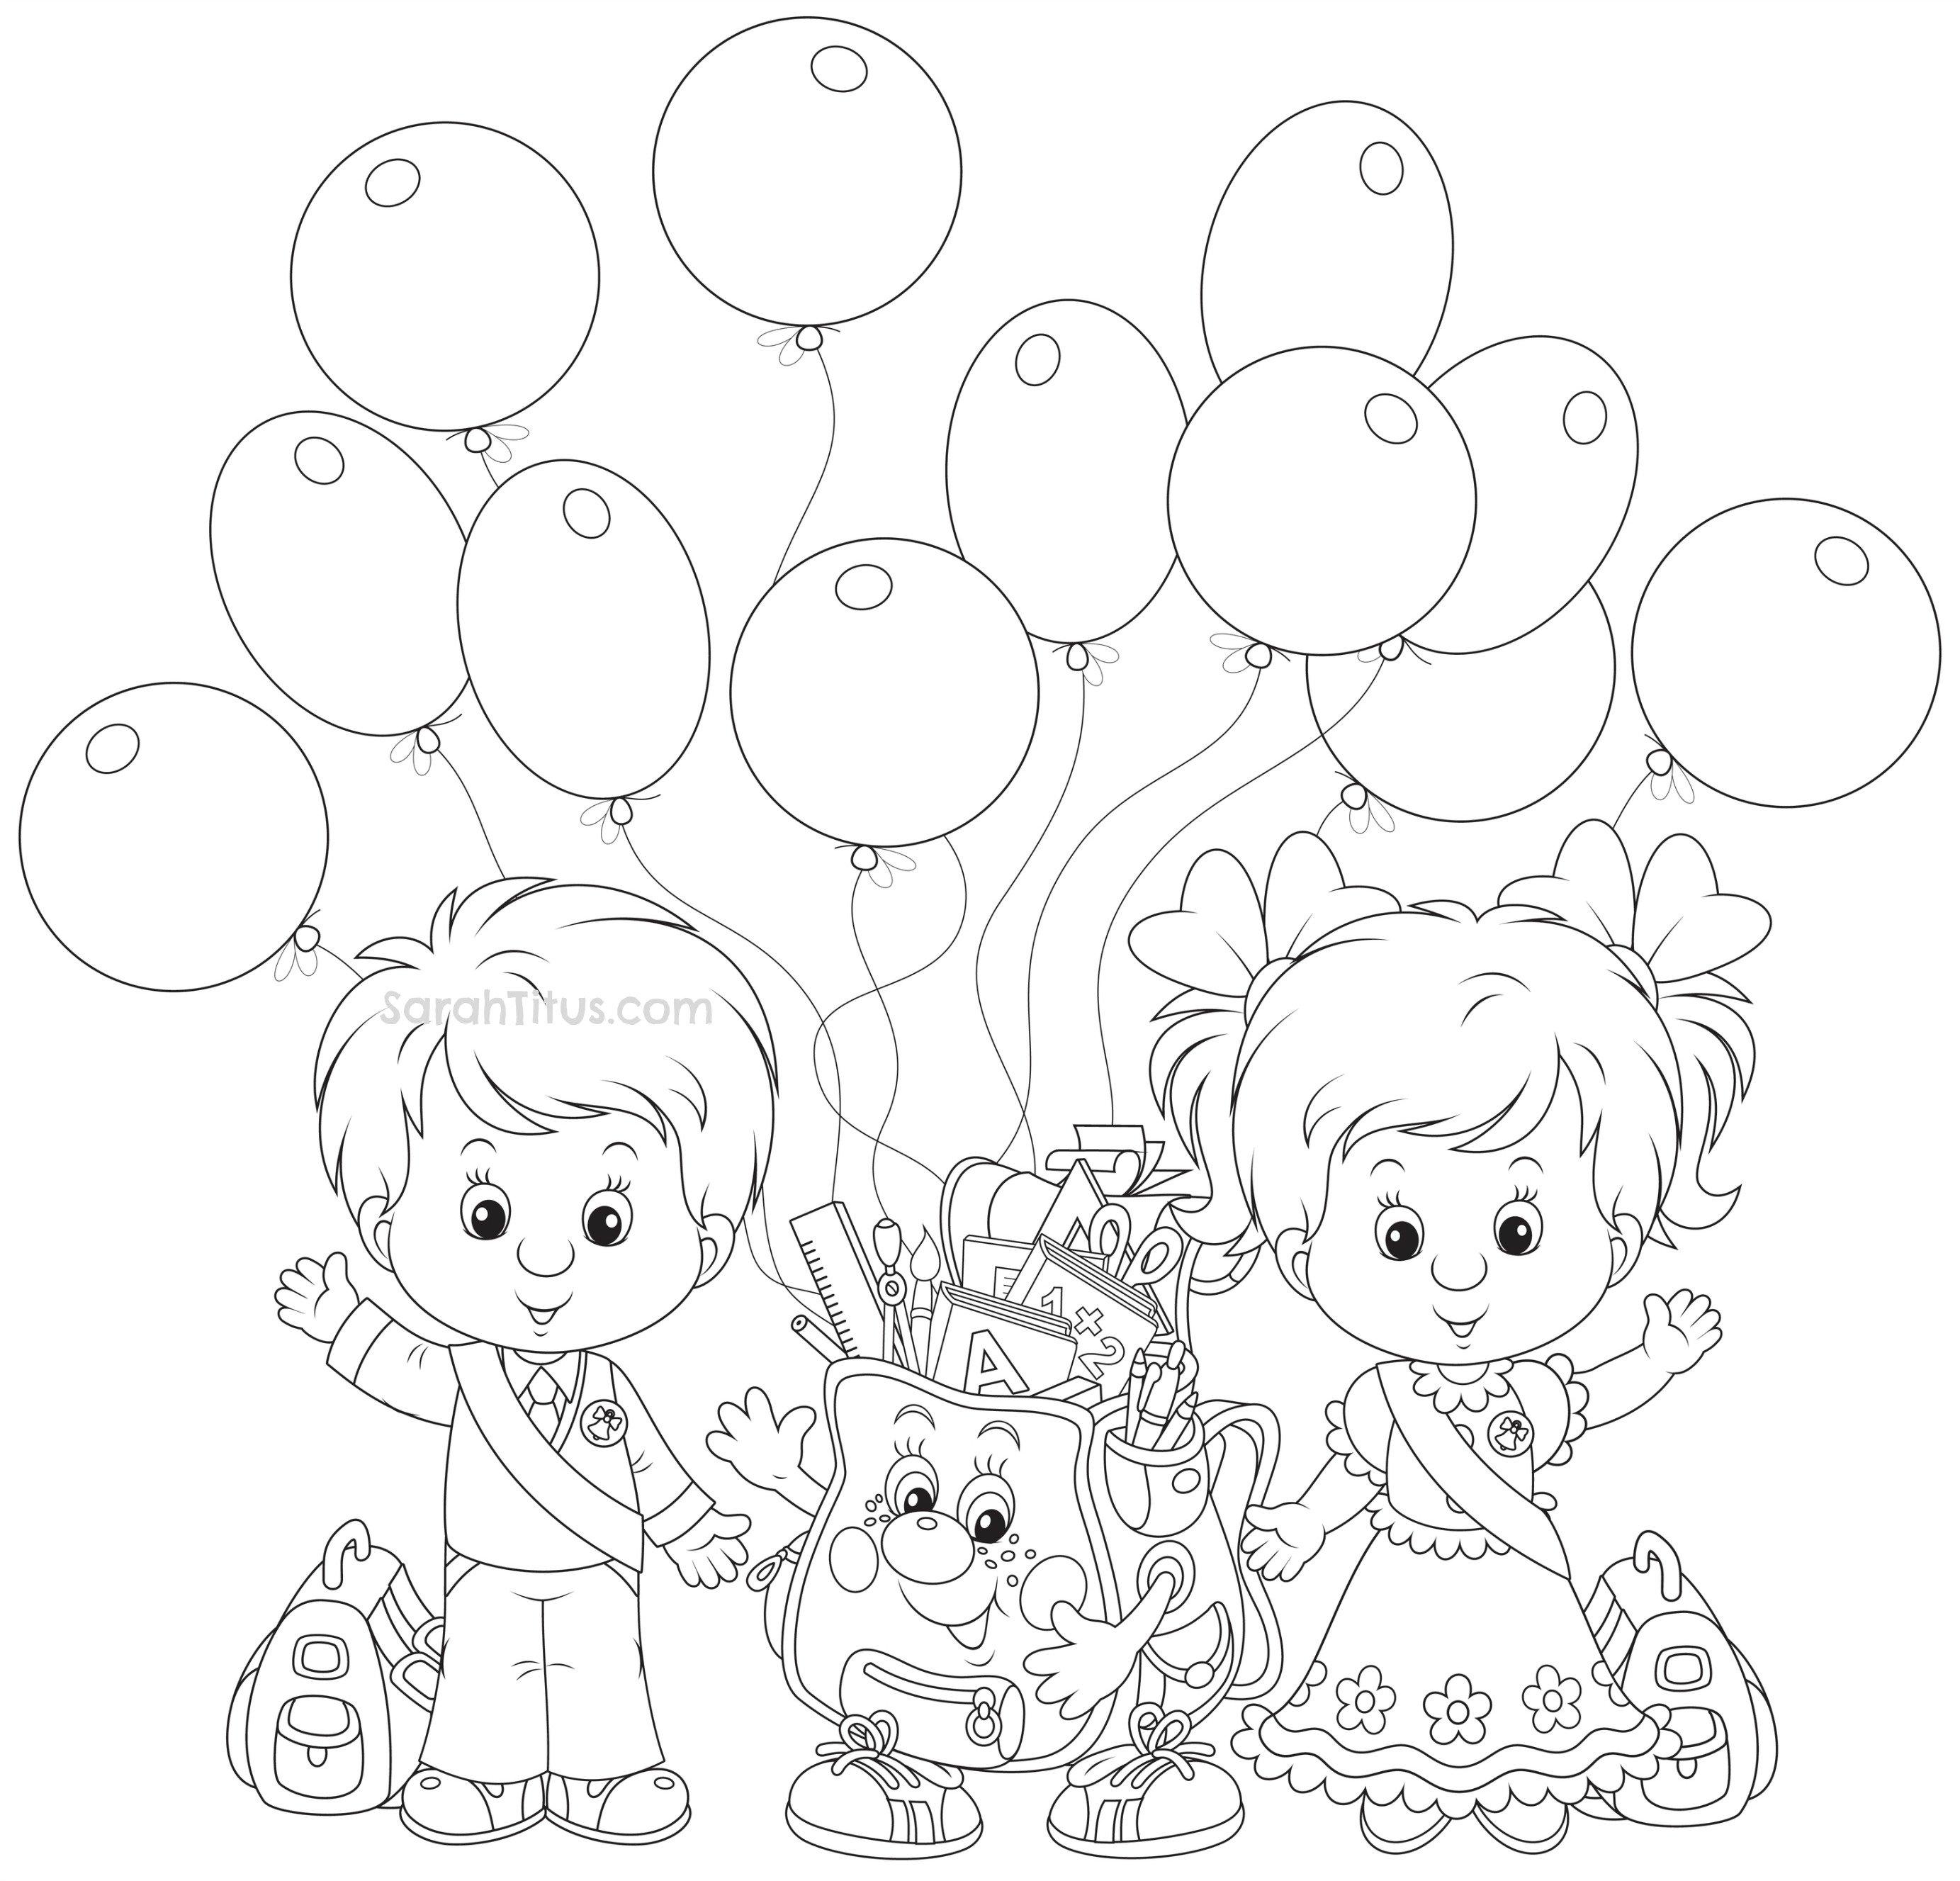 2766x2654 First Day Of School Coloring Pages For Kindergarten Download